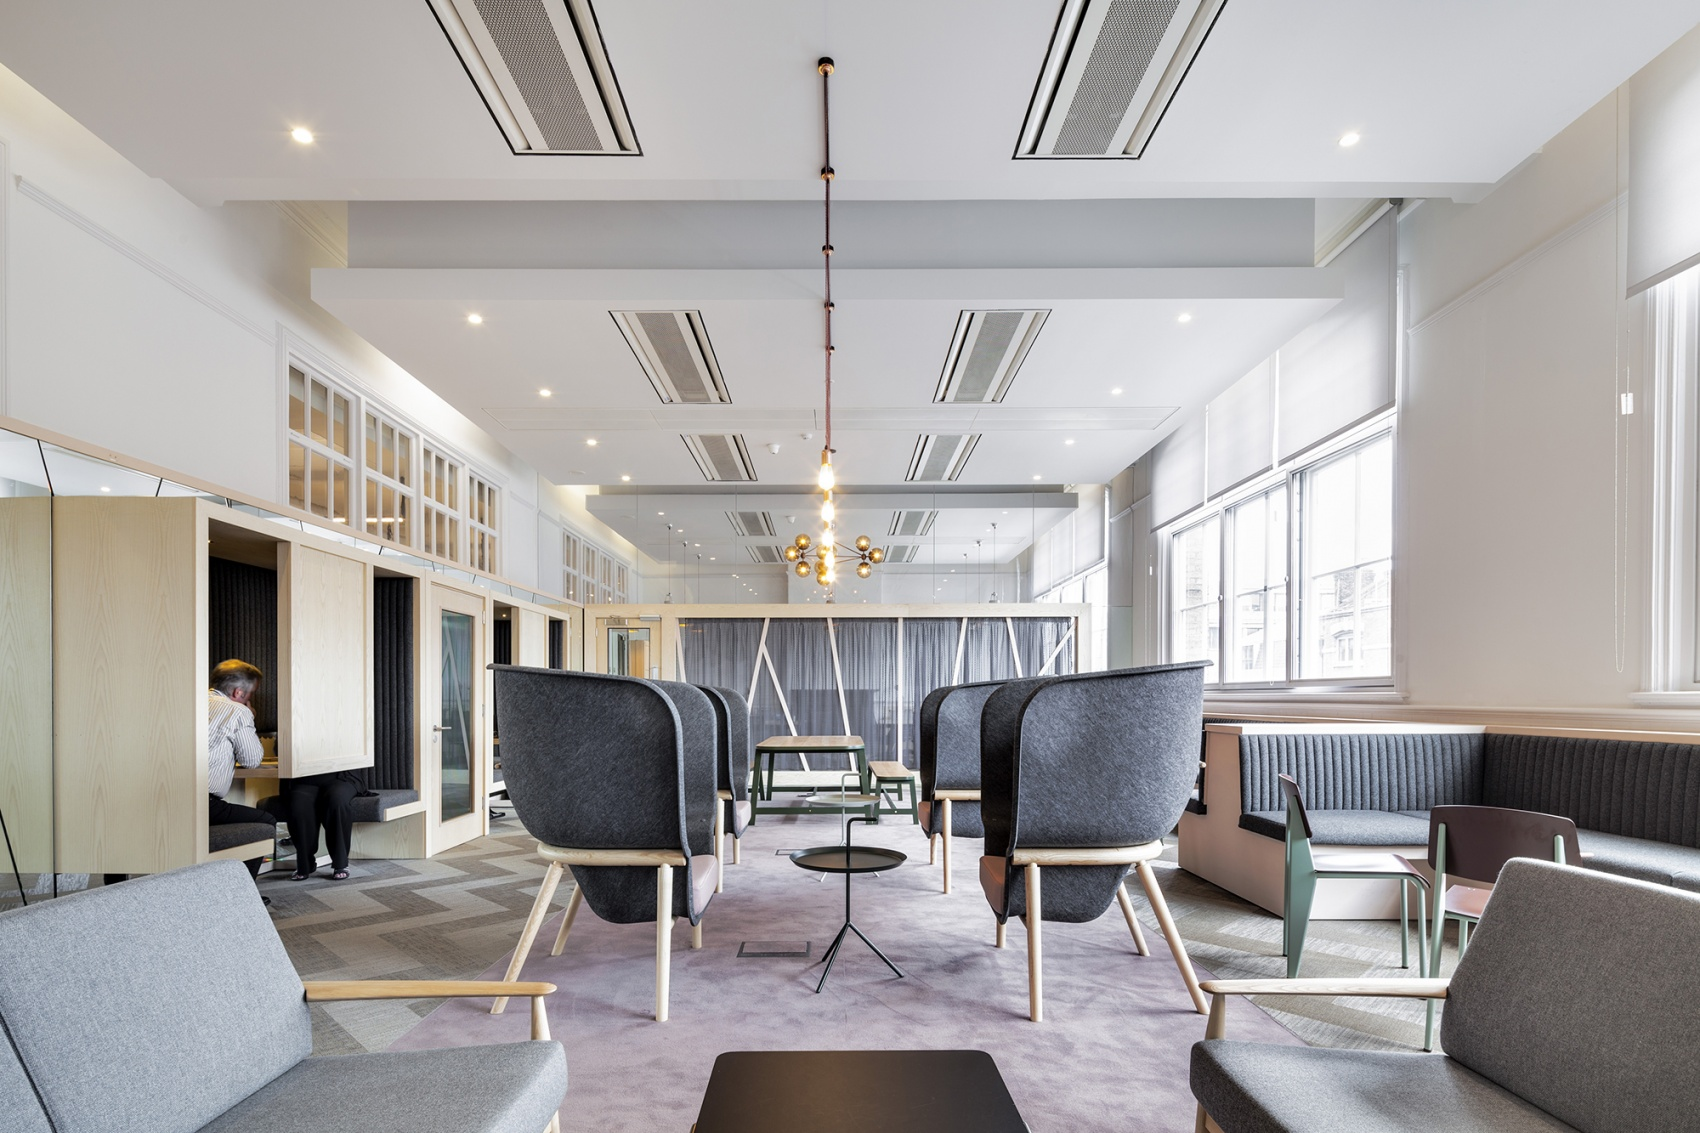 Pod chairs by De Vorm in East Side co-working space, created by The Office Group.